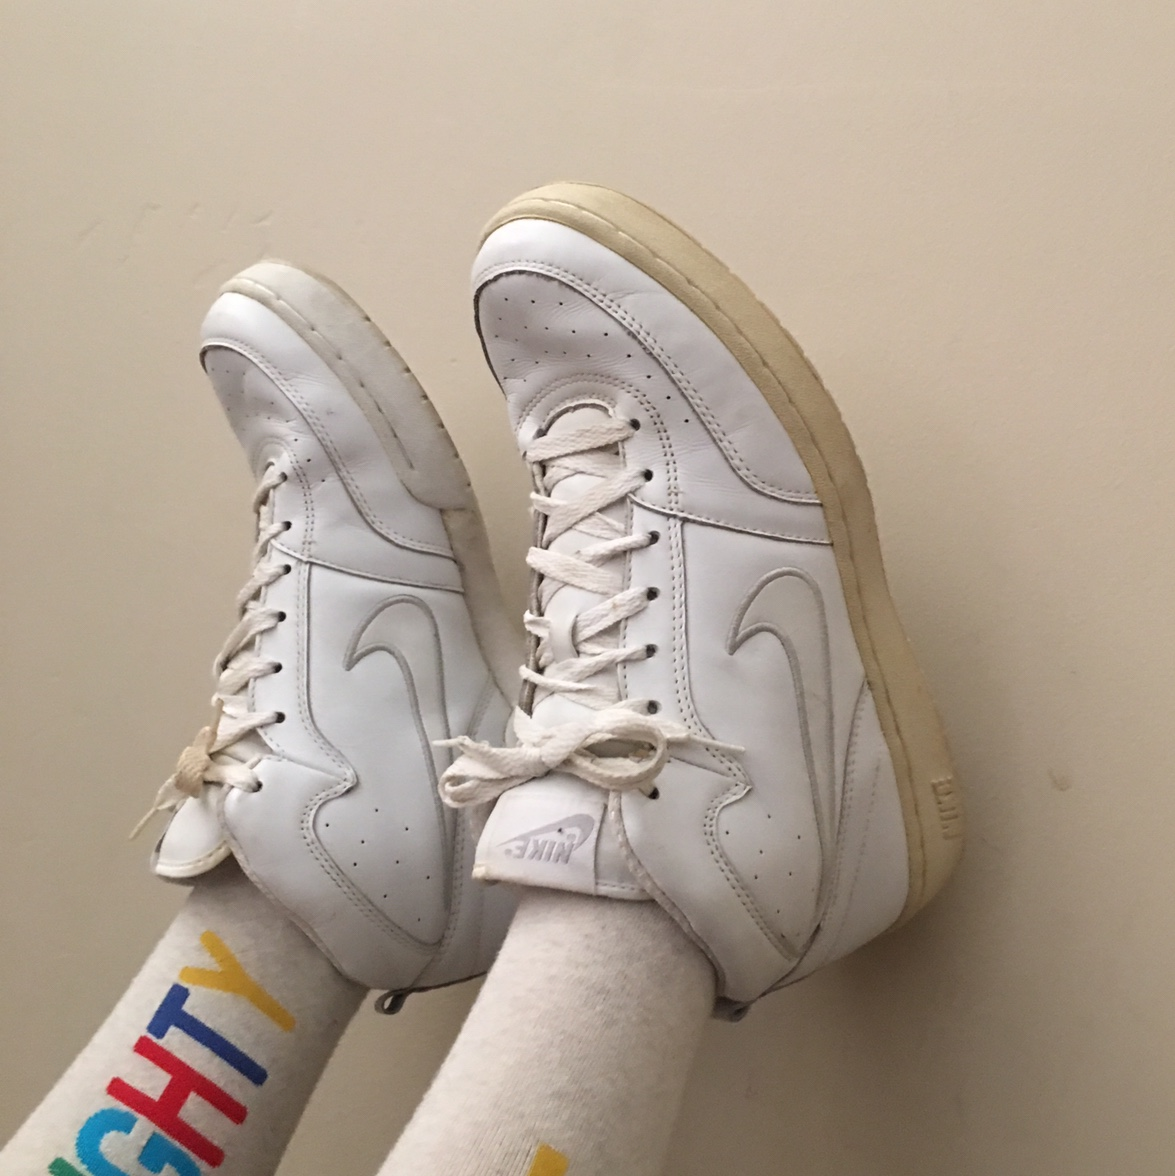 Vintage Nike basketball shoes. These